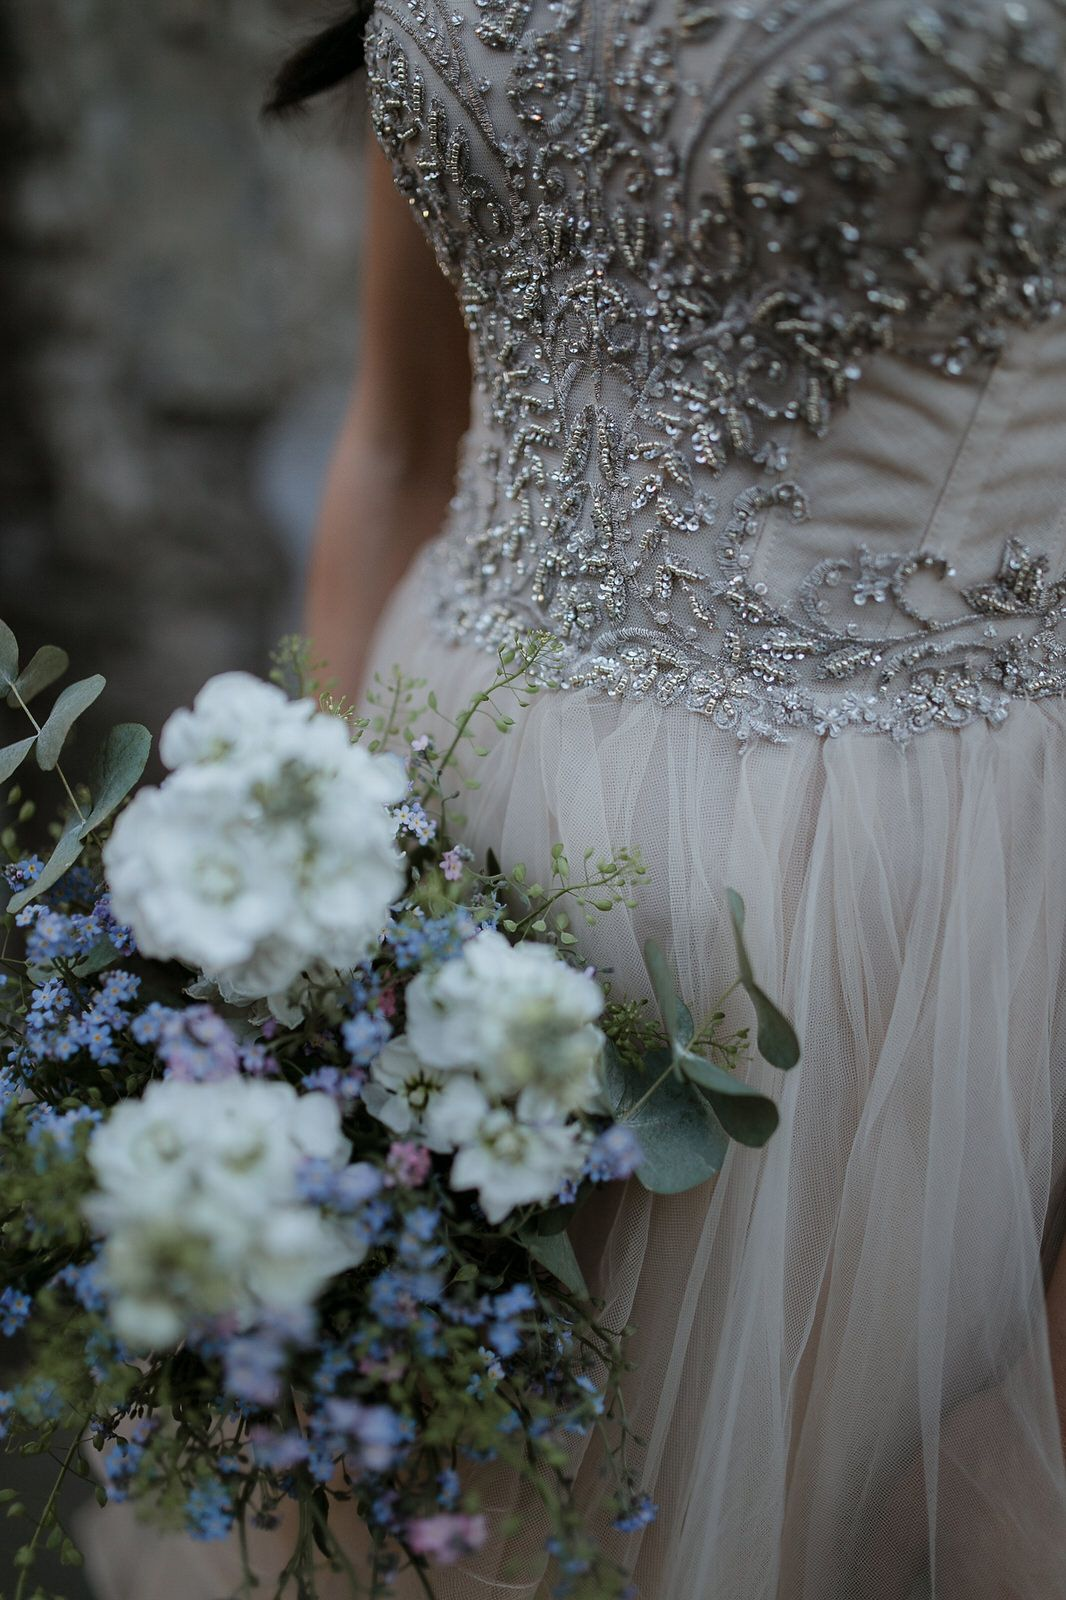 Watters wedding dress details and romantic bouquet